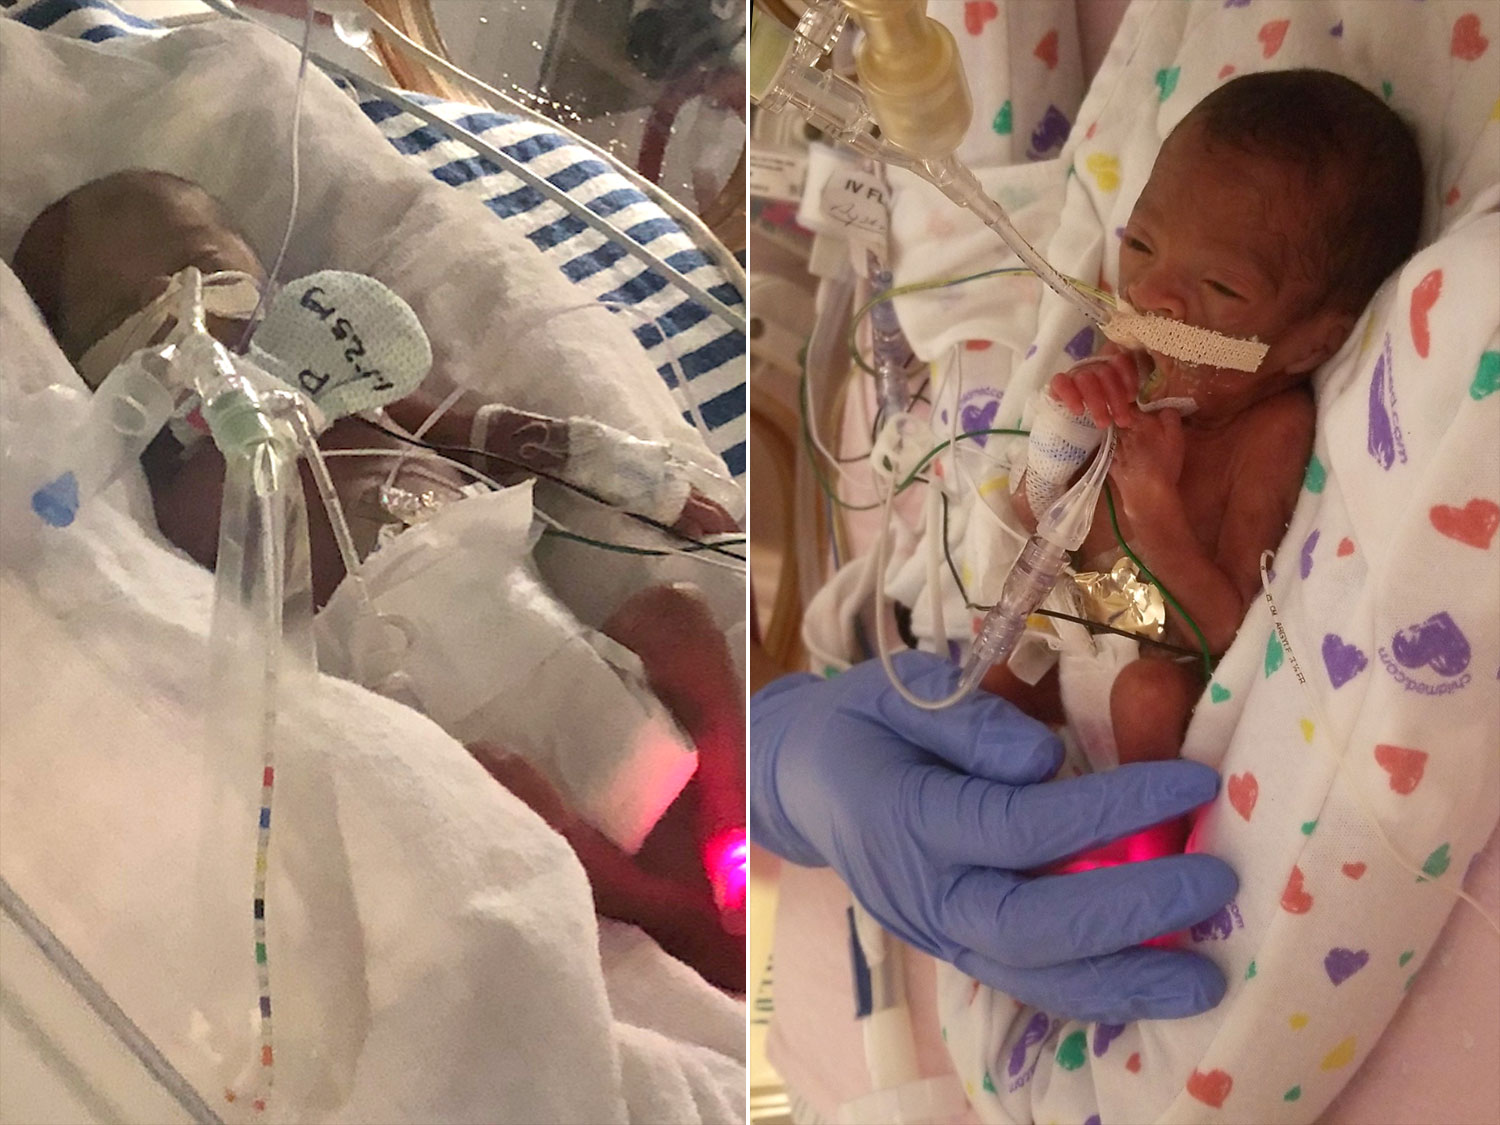 Hurricane Florence's Tiniest Evacuees Flown to Safety from the NICU Ahead of Storm